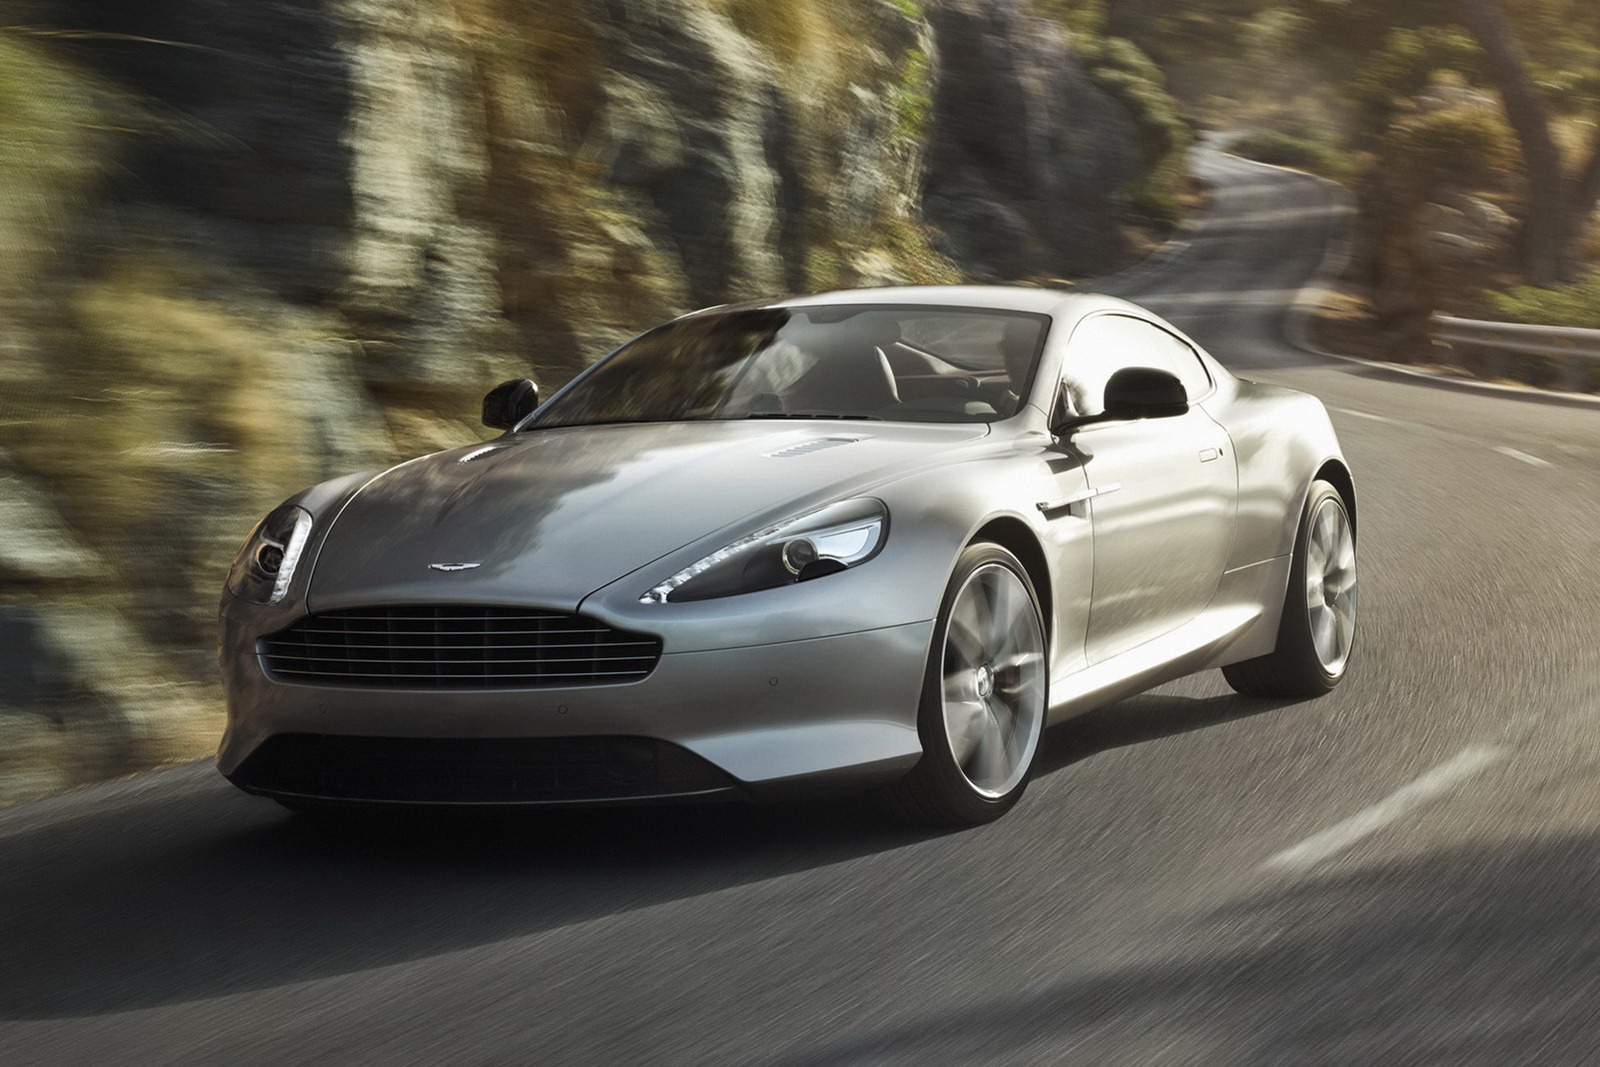 Aston_Martin_DB9_2013_Motion